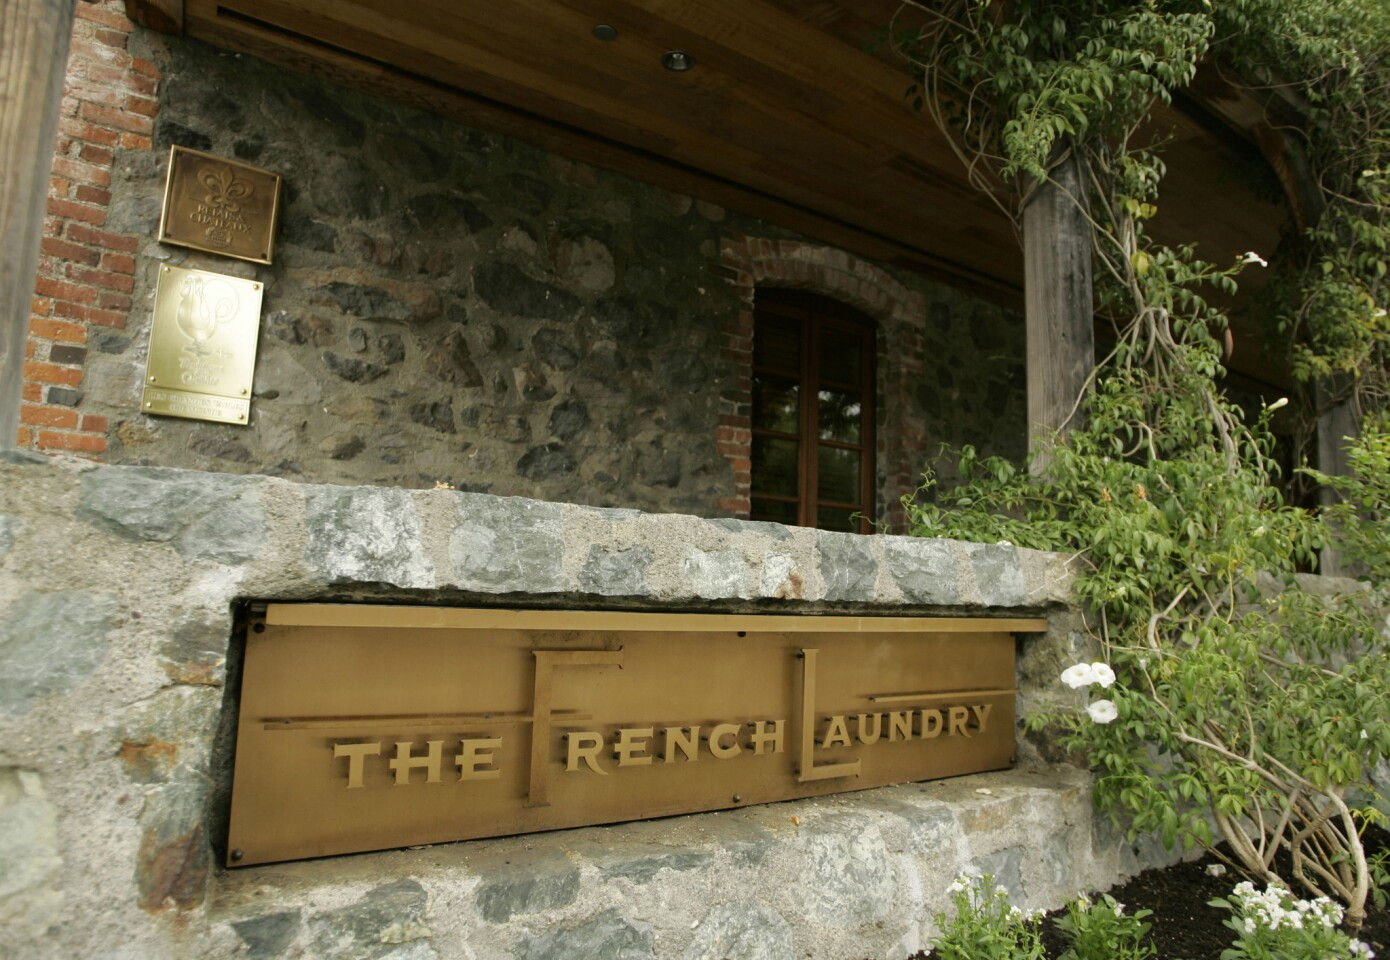 The exterior of the French Laundry restaurant in Yountville, Calif.